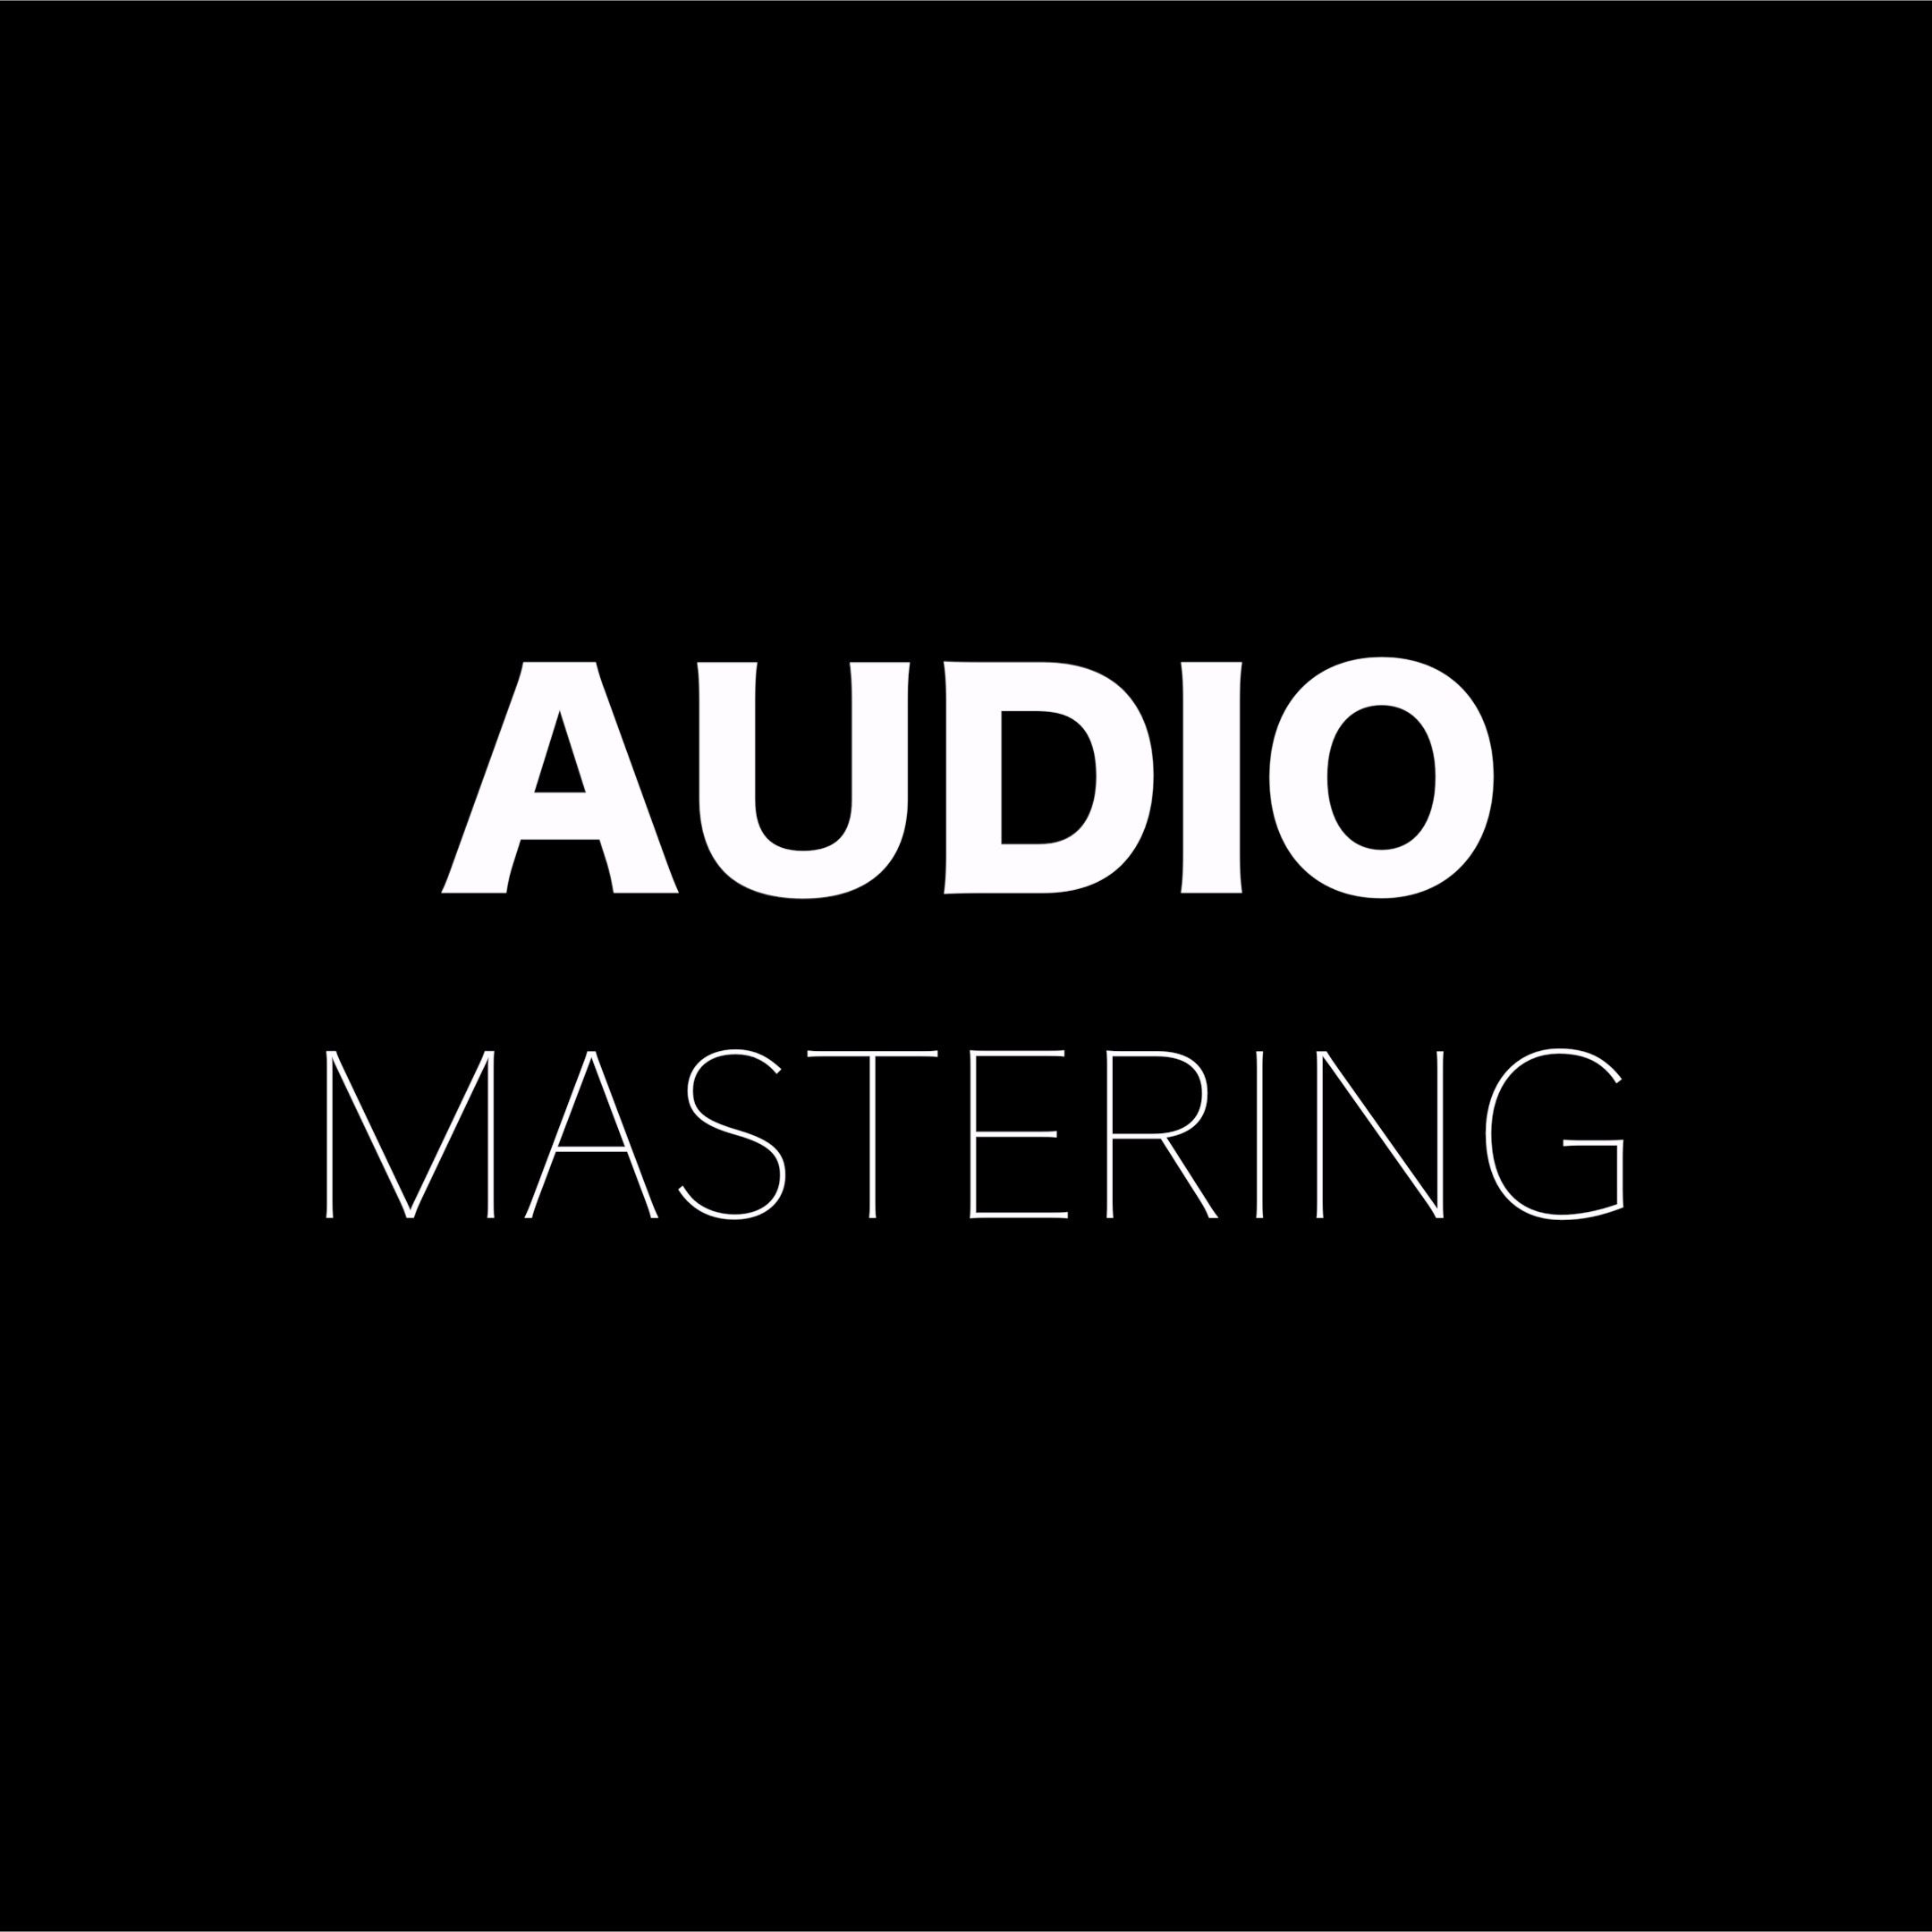 Audio Mastering Square.jpg